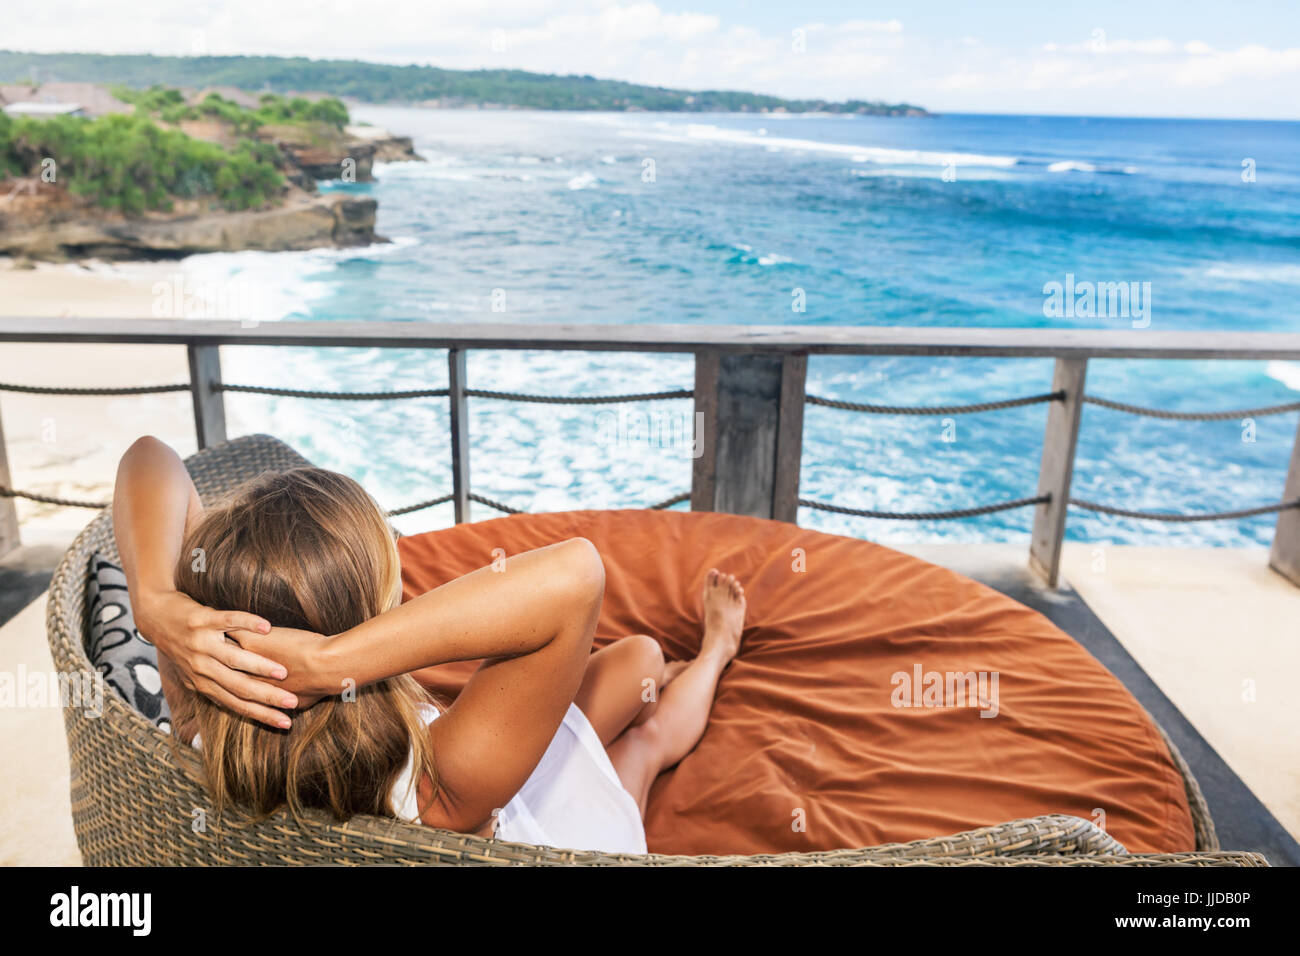 Young happy woman relaxing in lounge on roof veranda with beautiful tropical sea view. Positive girl look at ocean - Stock Image